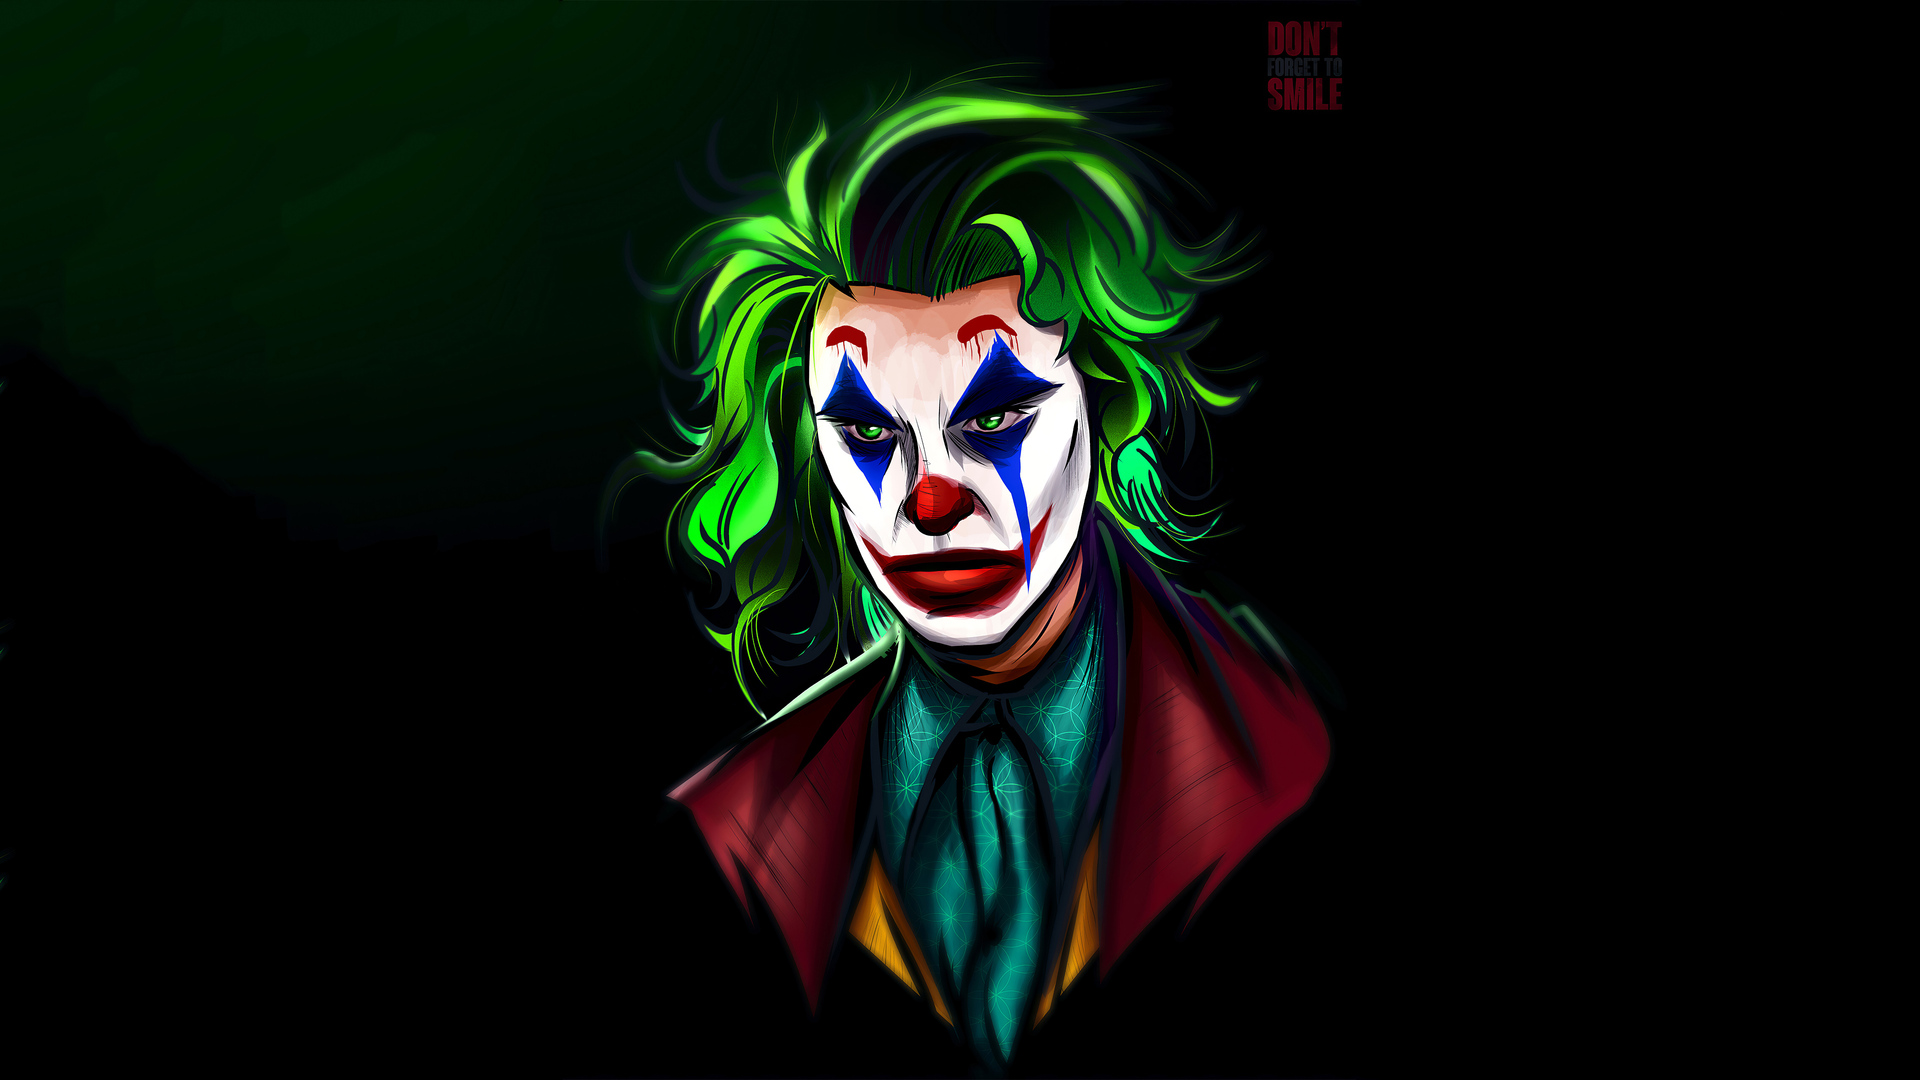 1920x1080 Joker Man 4k Laptop Full Hd 1080p Hd 4k Wallpapers Images Backgrounds Photos And Pictures